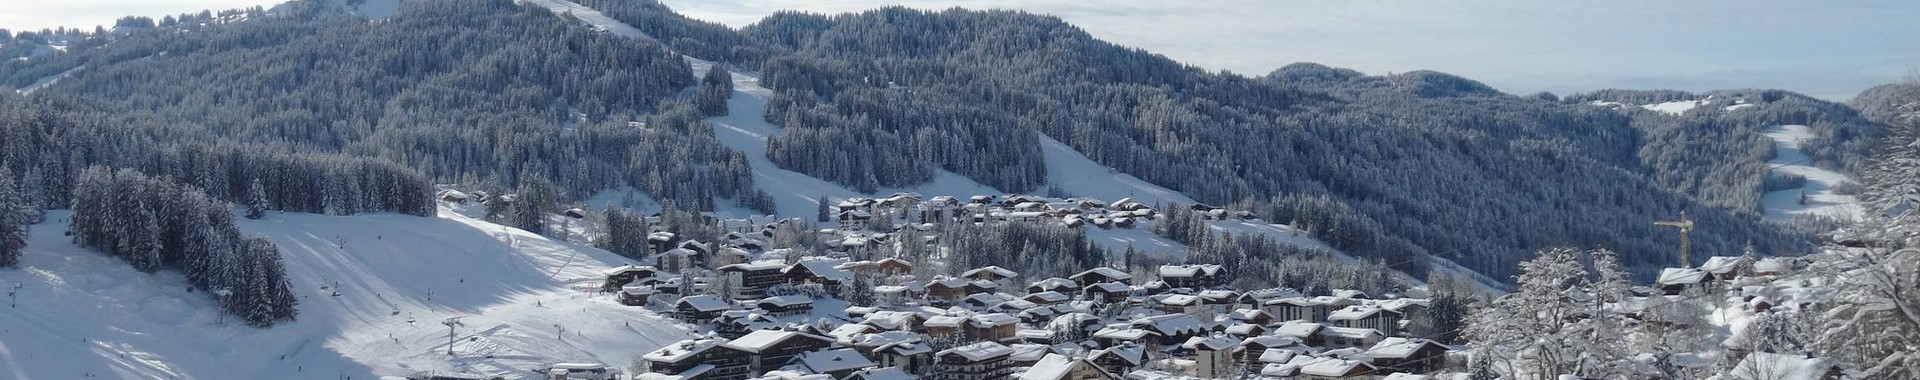 lesgets-hebergements-village-station-ski